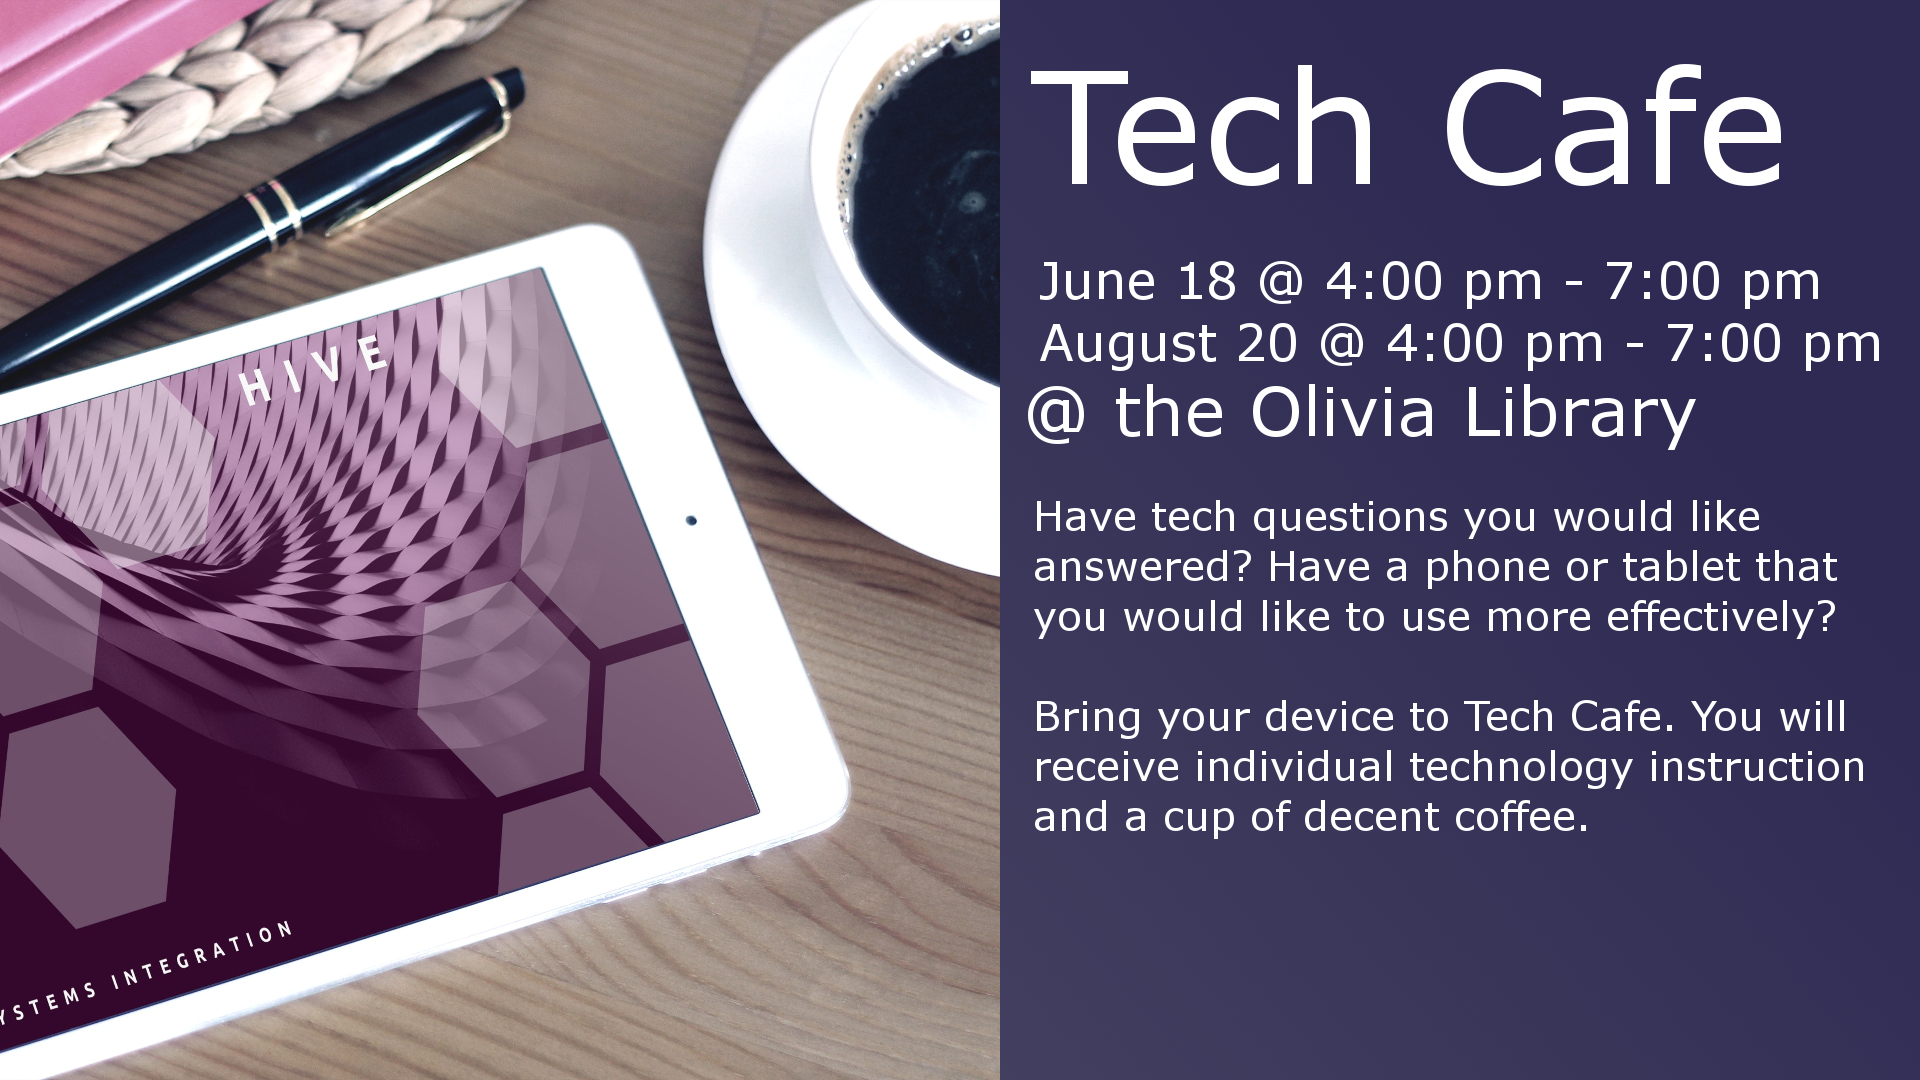 June 18 @ 4:00 - 7:00 pm August 20 @ 4:00 - 7:00 pm Have tech questions you would like answered? Have a phone or tablet that you would like to use more effectively? Then come to Tech Cafe.